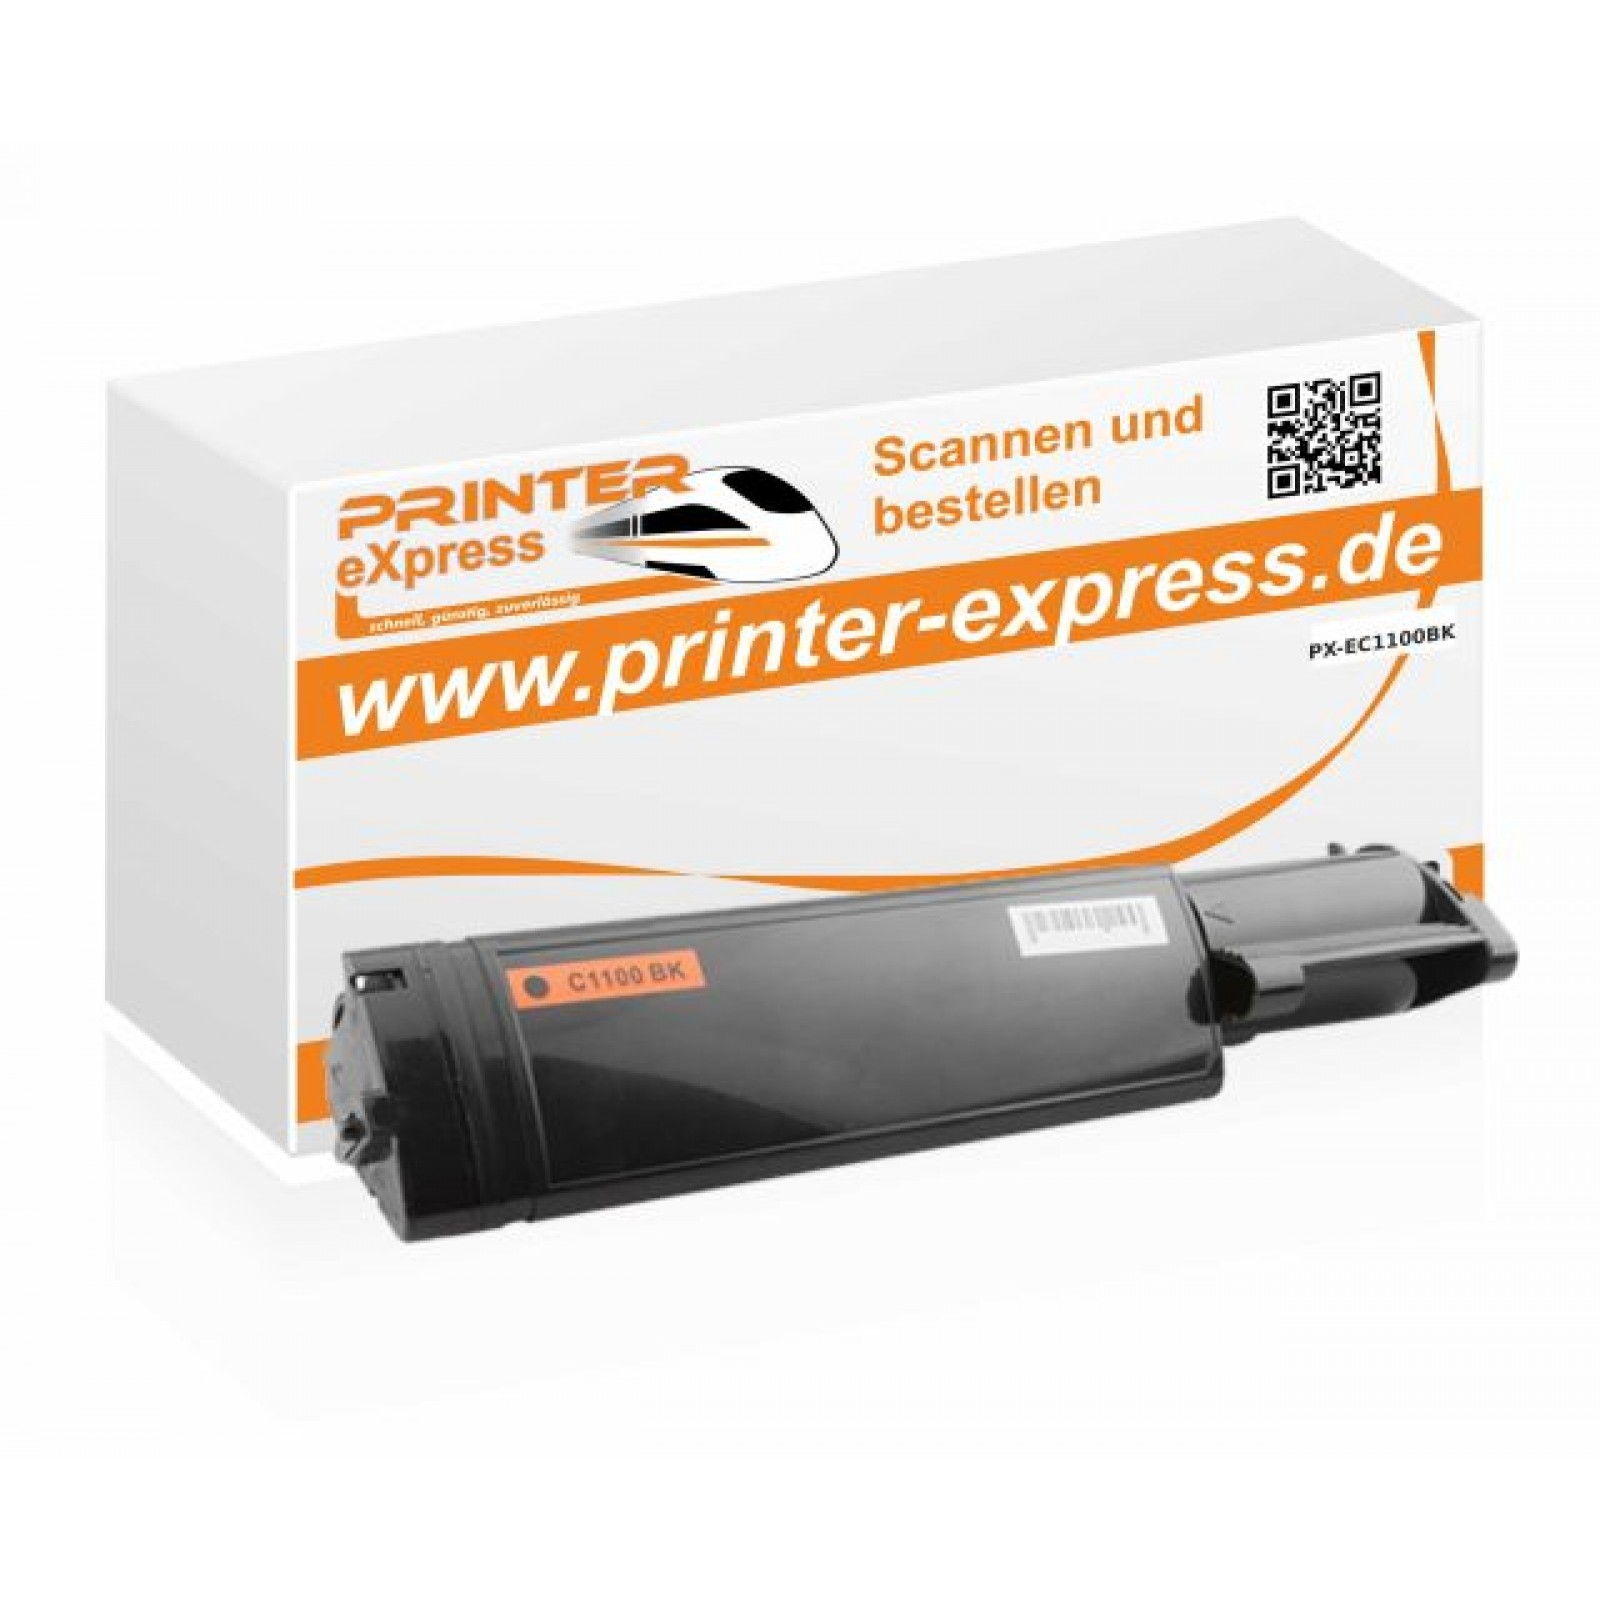 Toner alternativ zu Epson C13S050190, S050190, C1100...